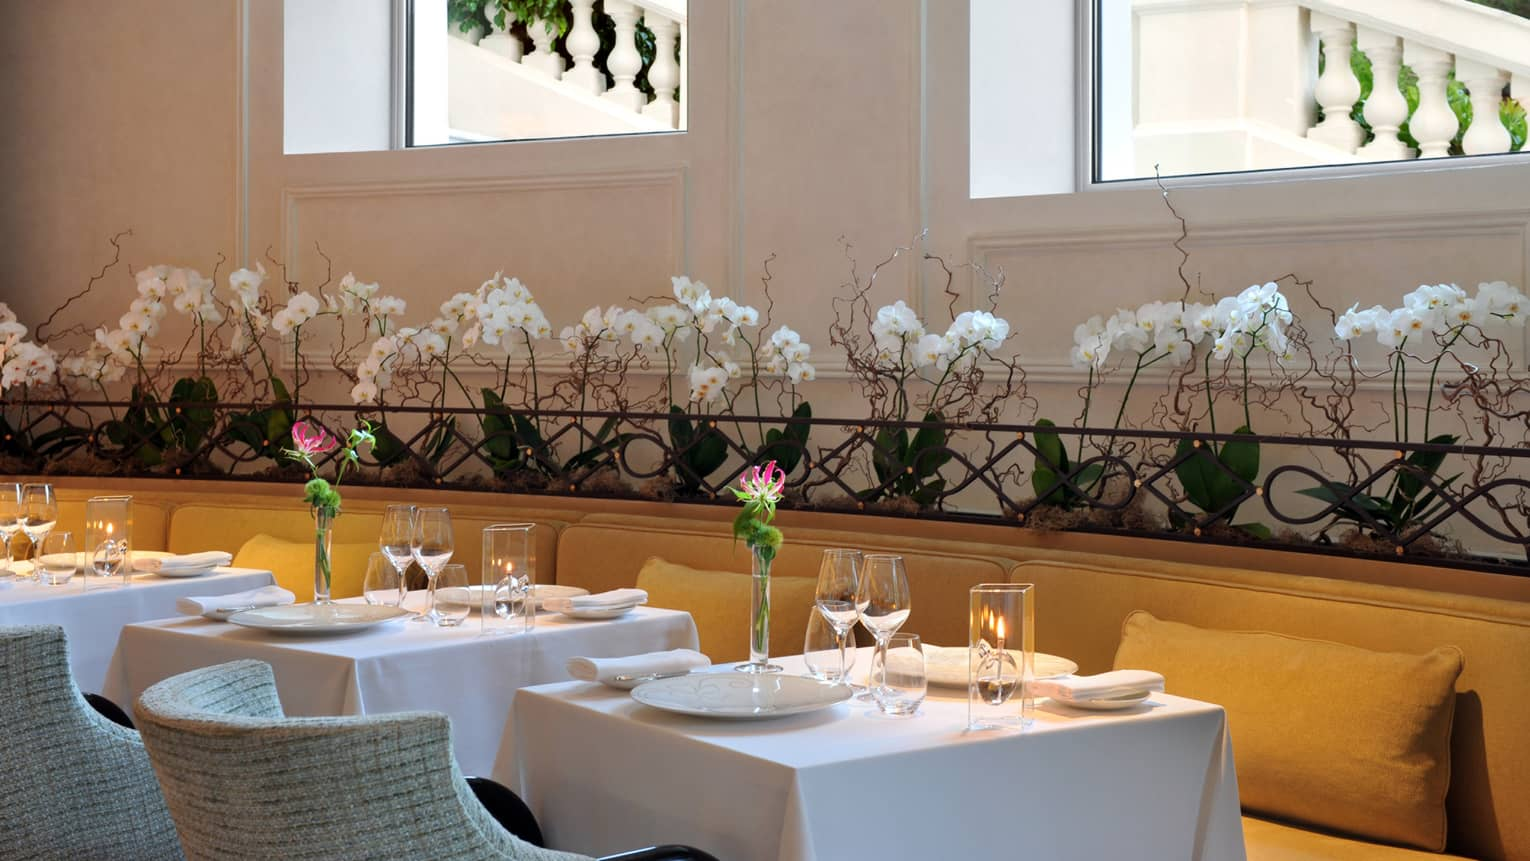 Le Cap dining tables, chairs under row of white orchids, windows